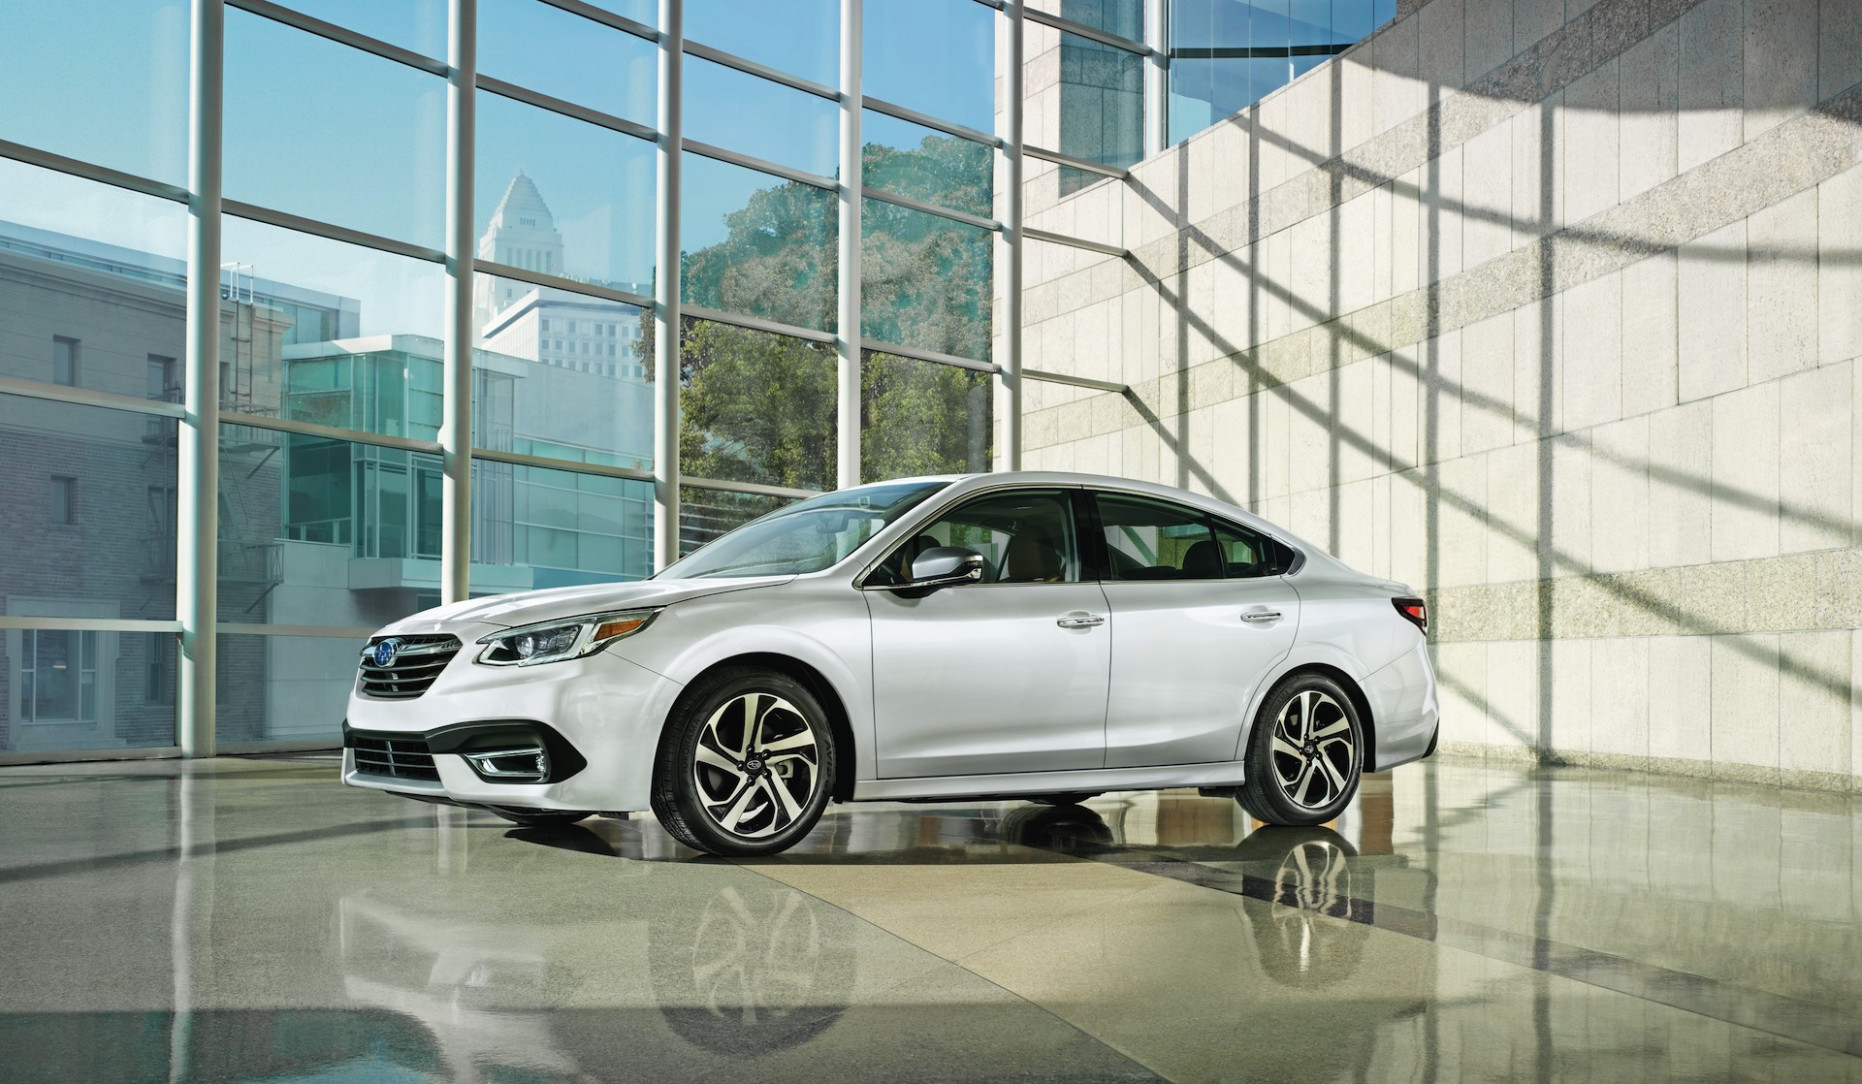 7 Subaru Legacy Review, Ratings, Specs, Prices, and Photos ... - 2020 subaru legacy 2